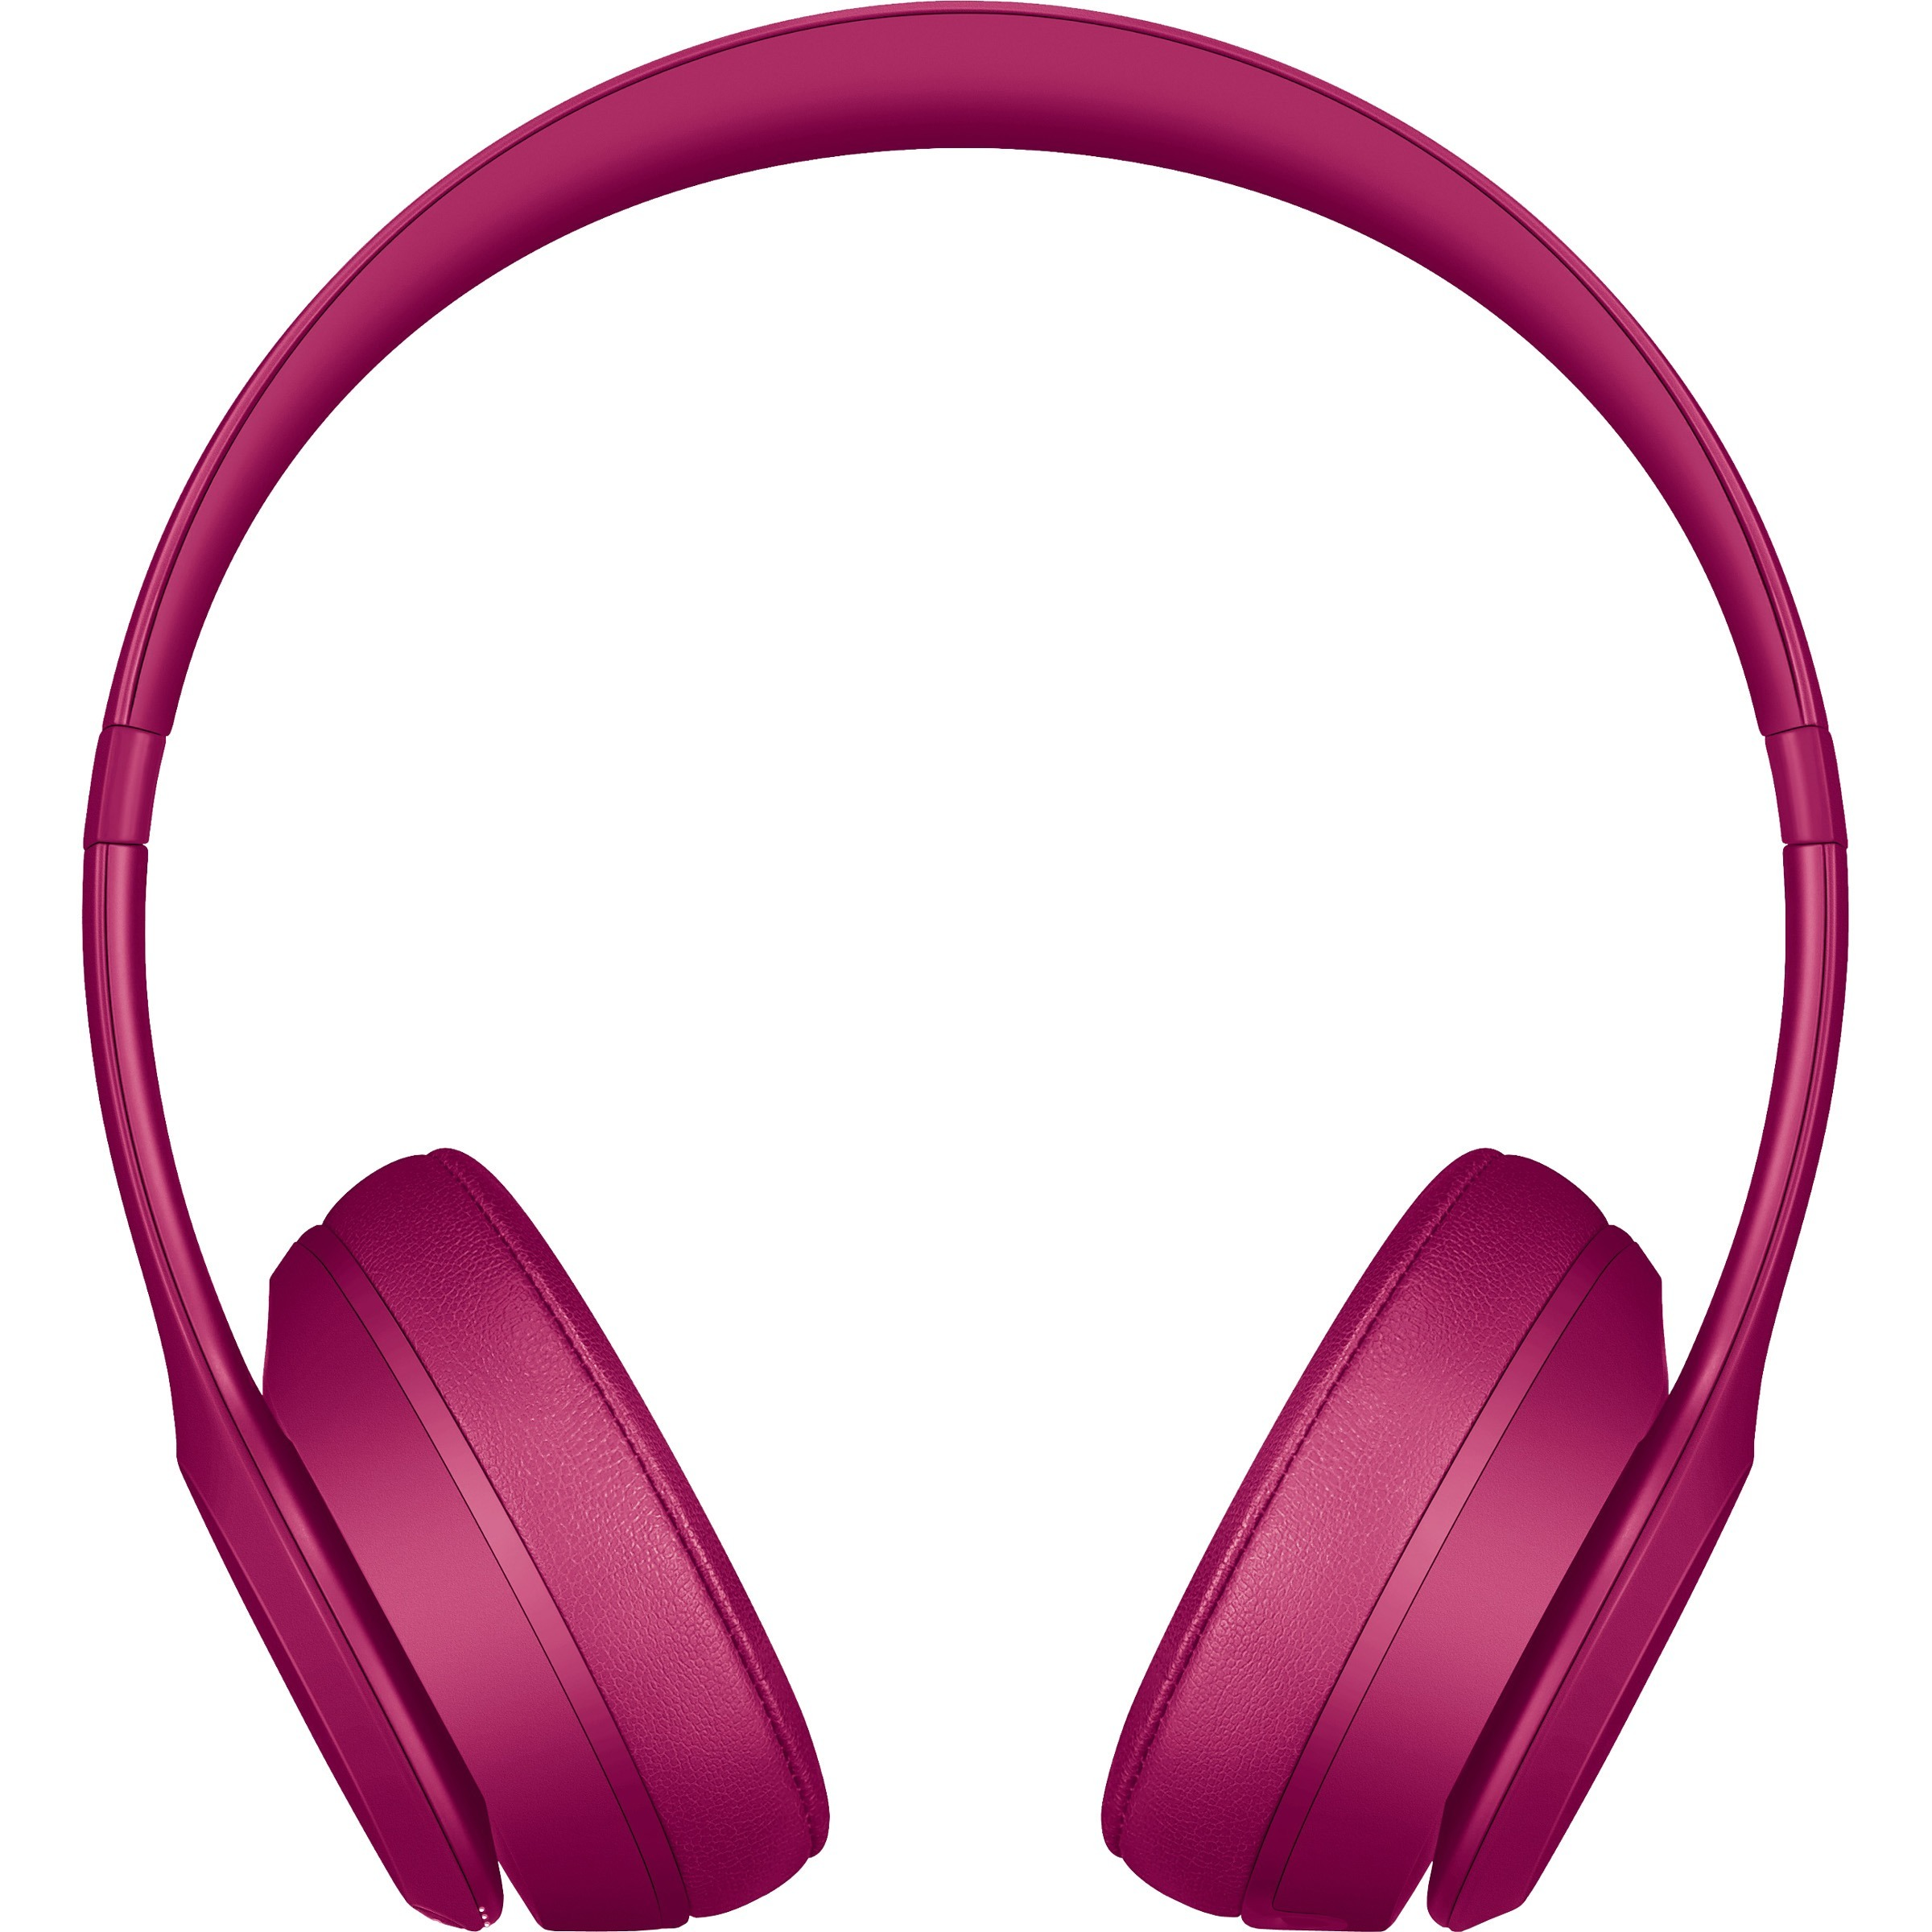 Beats by Dr. Dre Solo3 Wired/Wireless Bluetooth Stereo Headset - Over-the-head - Circumaural - Brick Red - Mini-phone